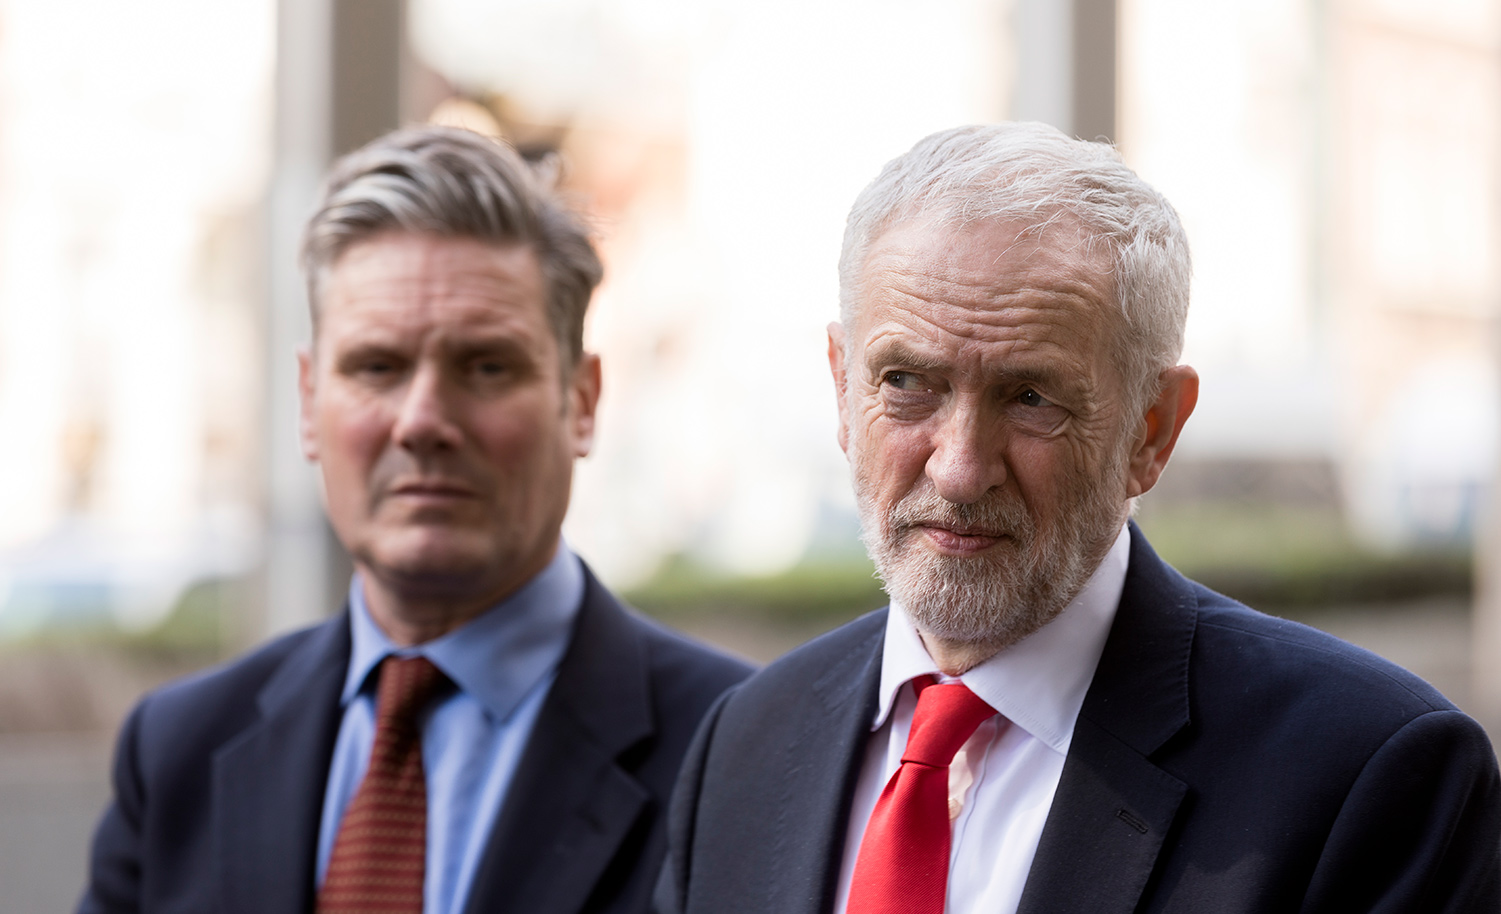 Then-MP Keir Starmer with then-British Labor leader Jeremy Corbyn on March 21, 2019 in Belgium. Thierry Monasse/Getty Images.